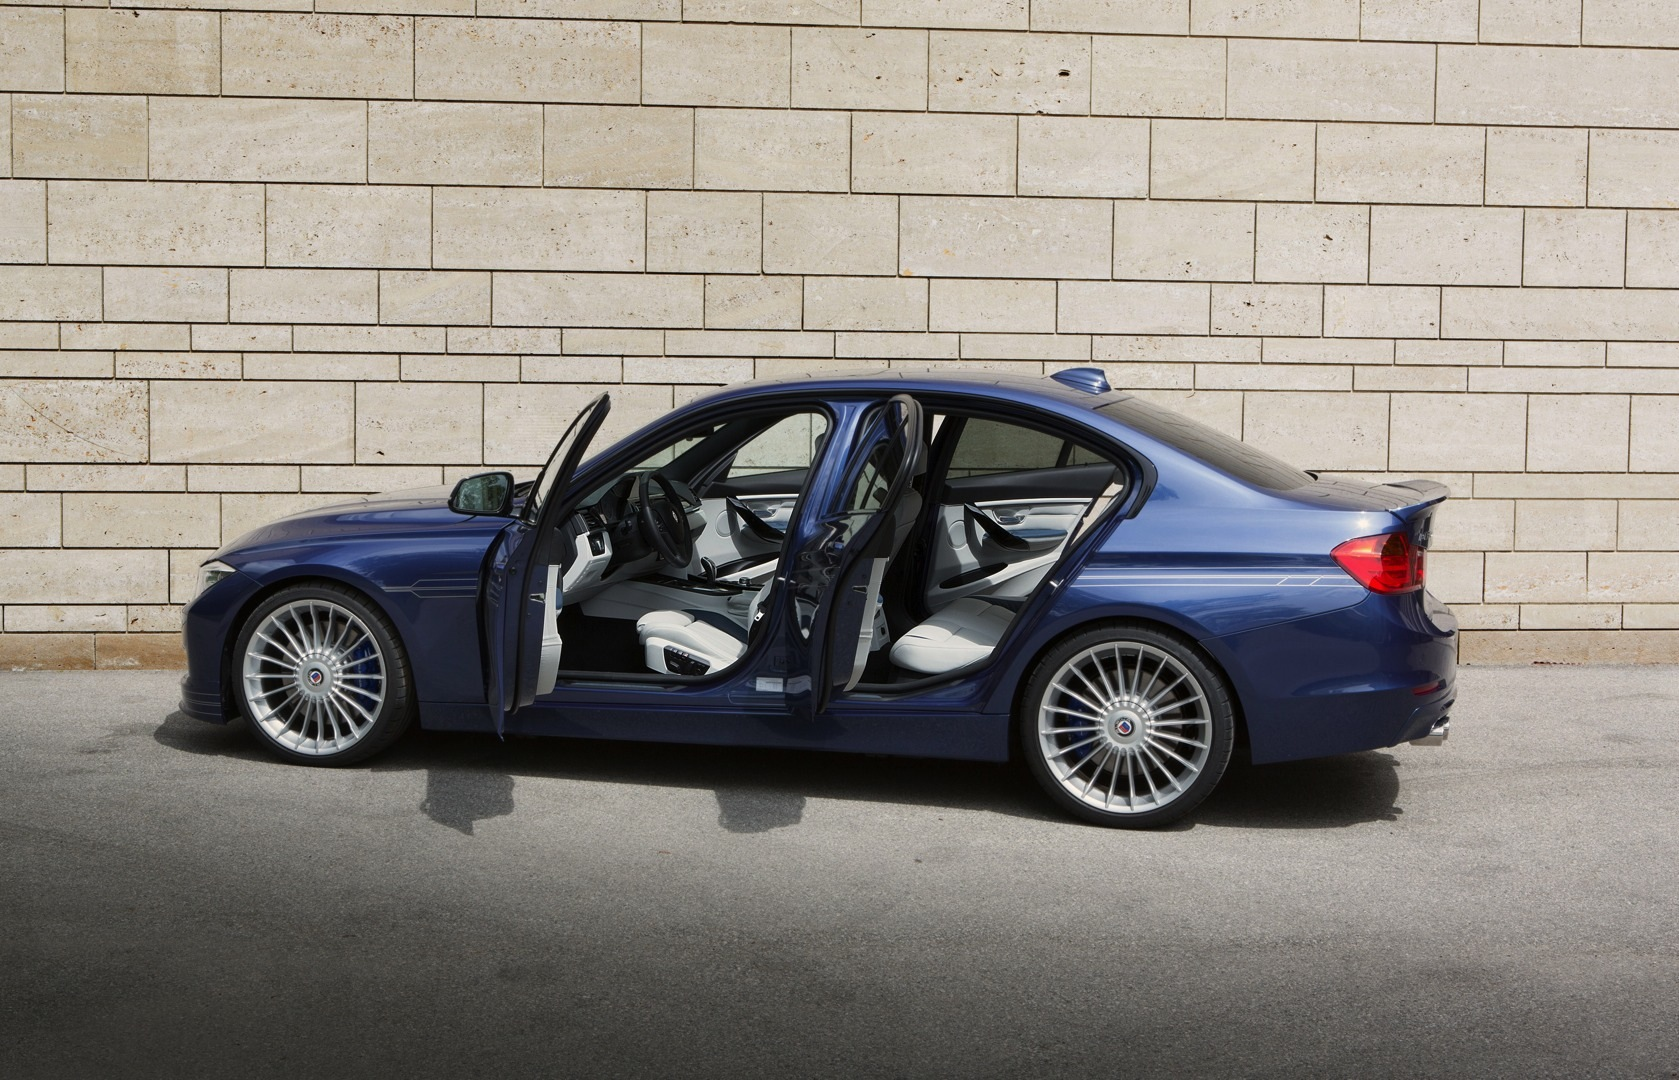 alpina d3 biturbo is the world 39 s fastest diesel production car autoevolution. Black Bedroom Furniture Sets. Home Design Ideas